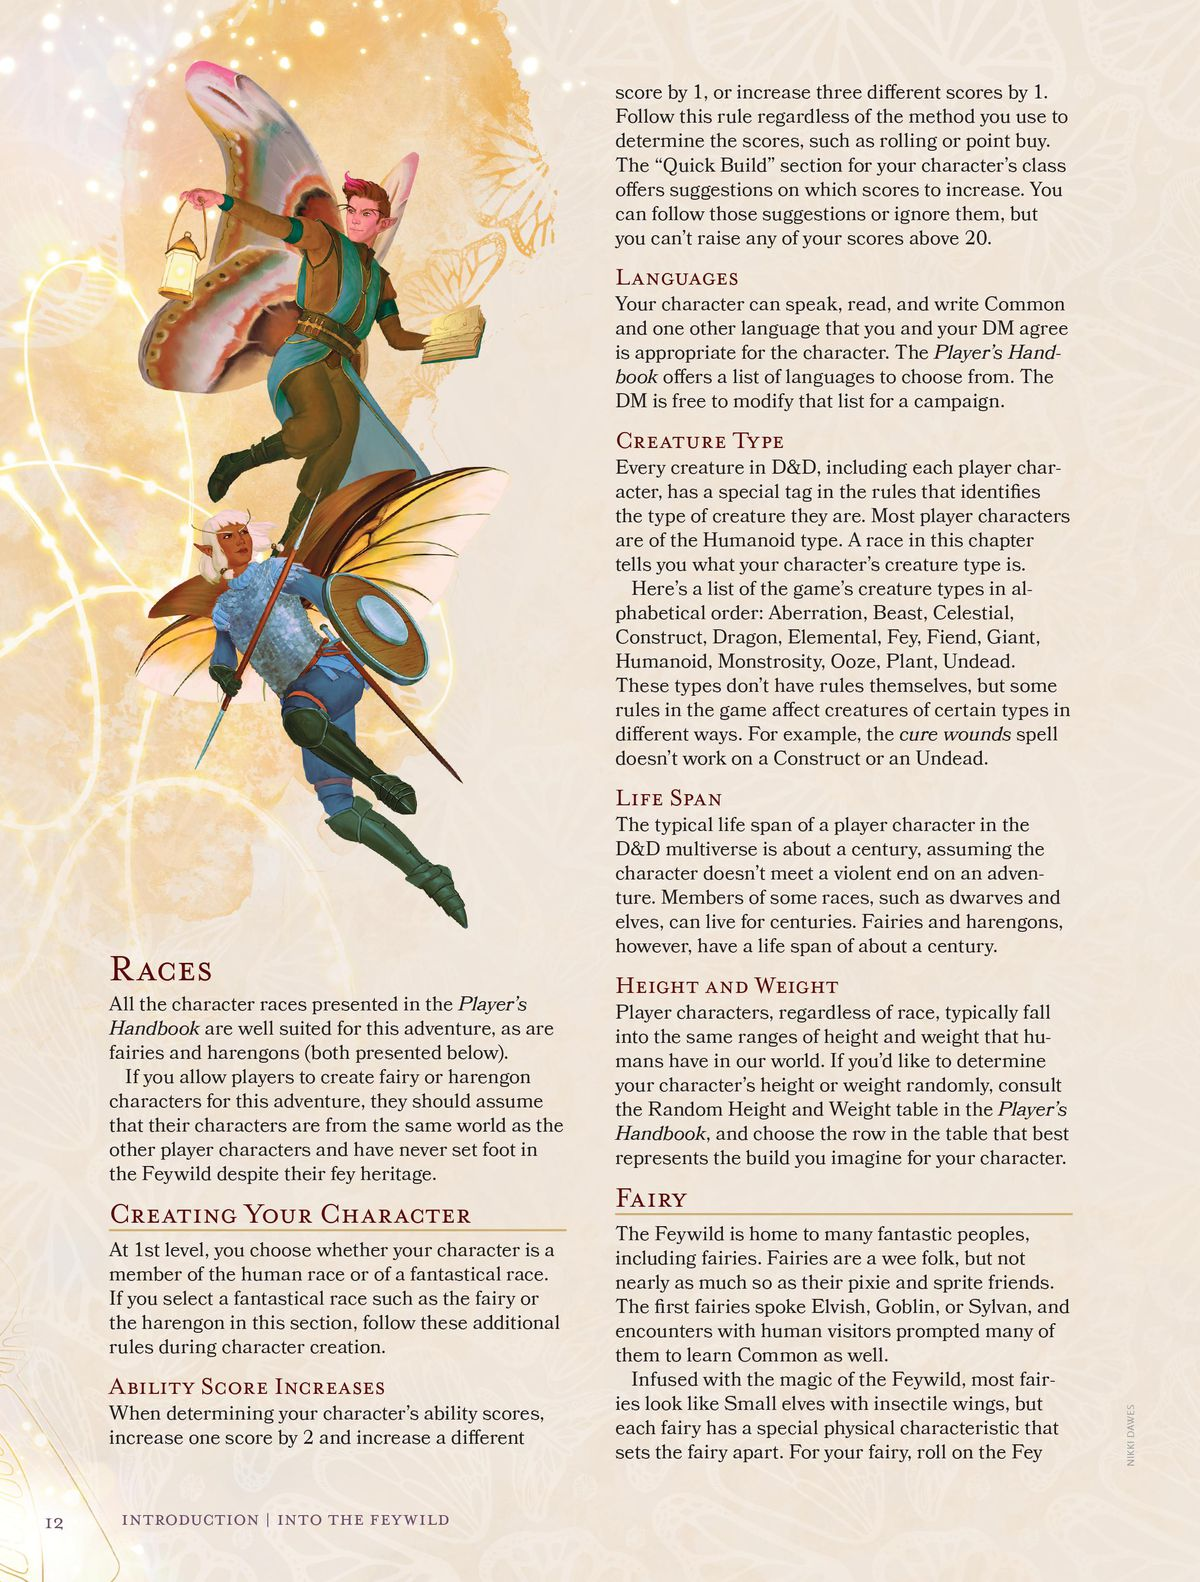 An example page from The Wild Beyond The Witchlight showing the first few lines of text from the fairy race.